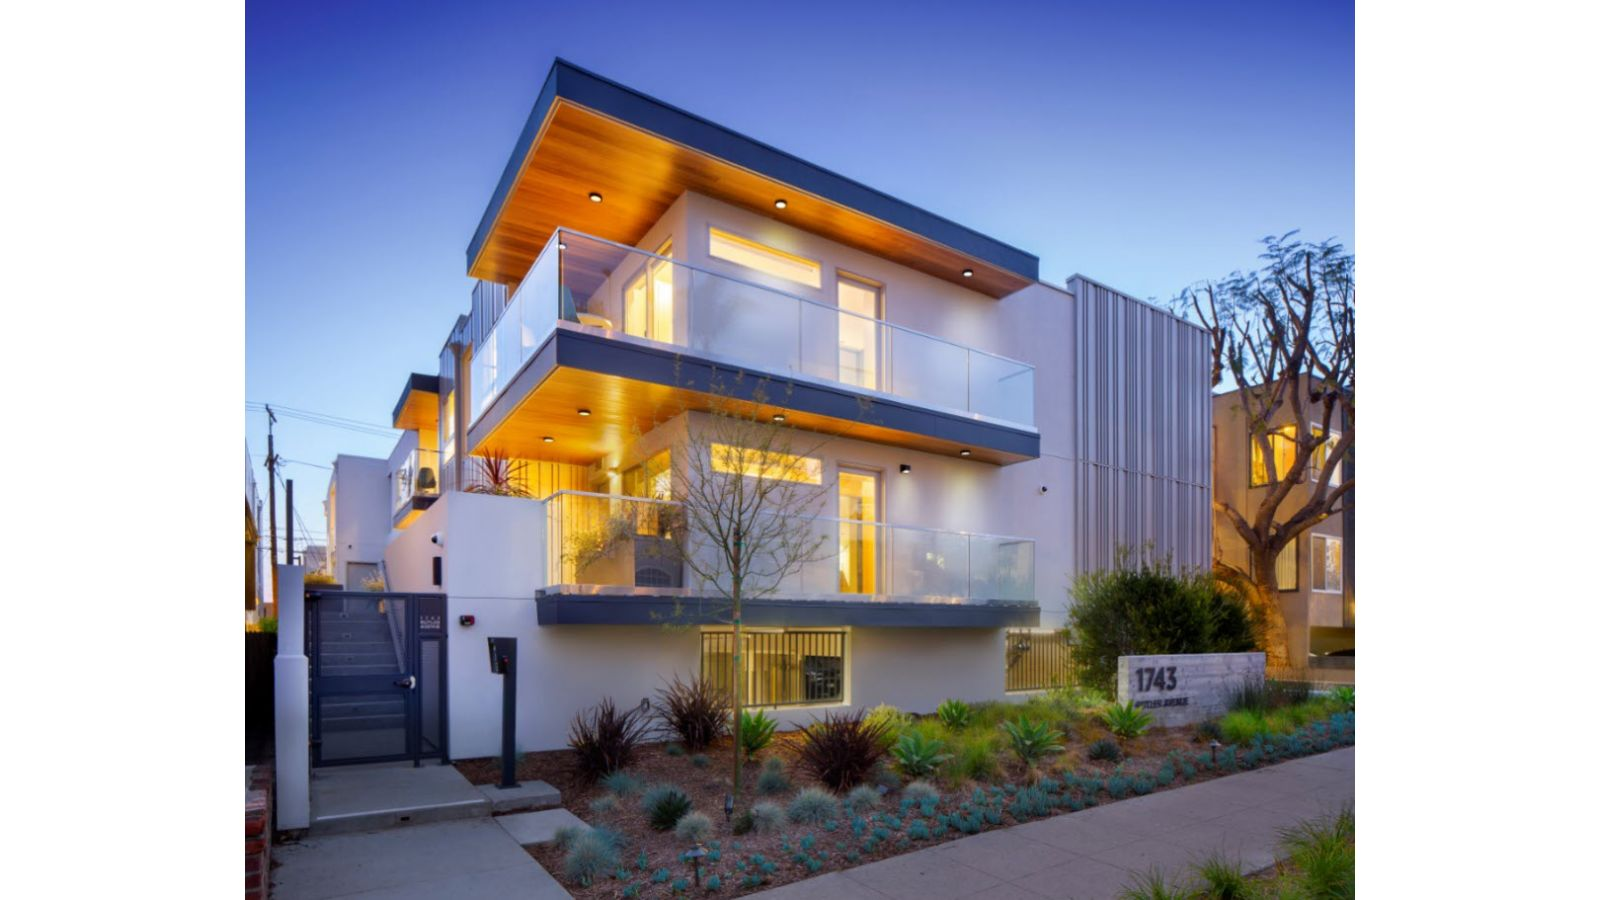 Multi-Family Real Estate Projects of 2020